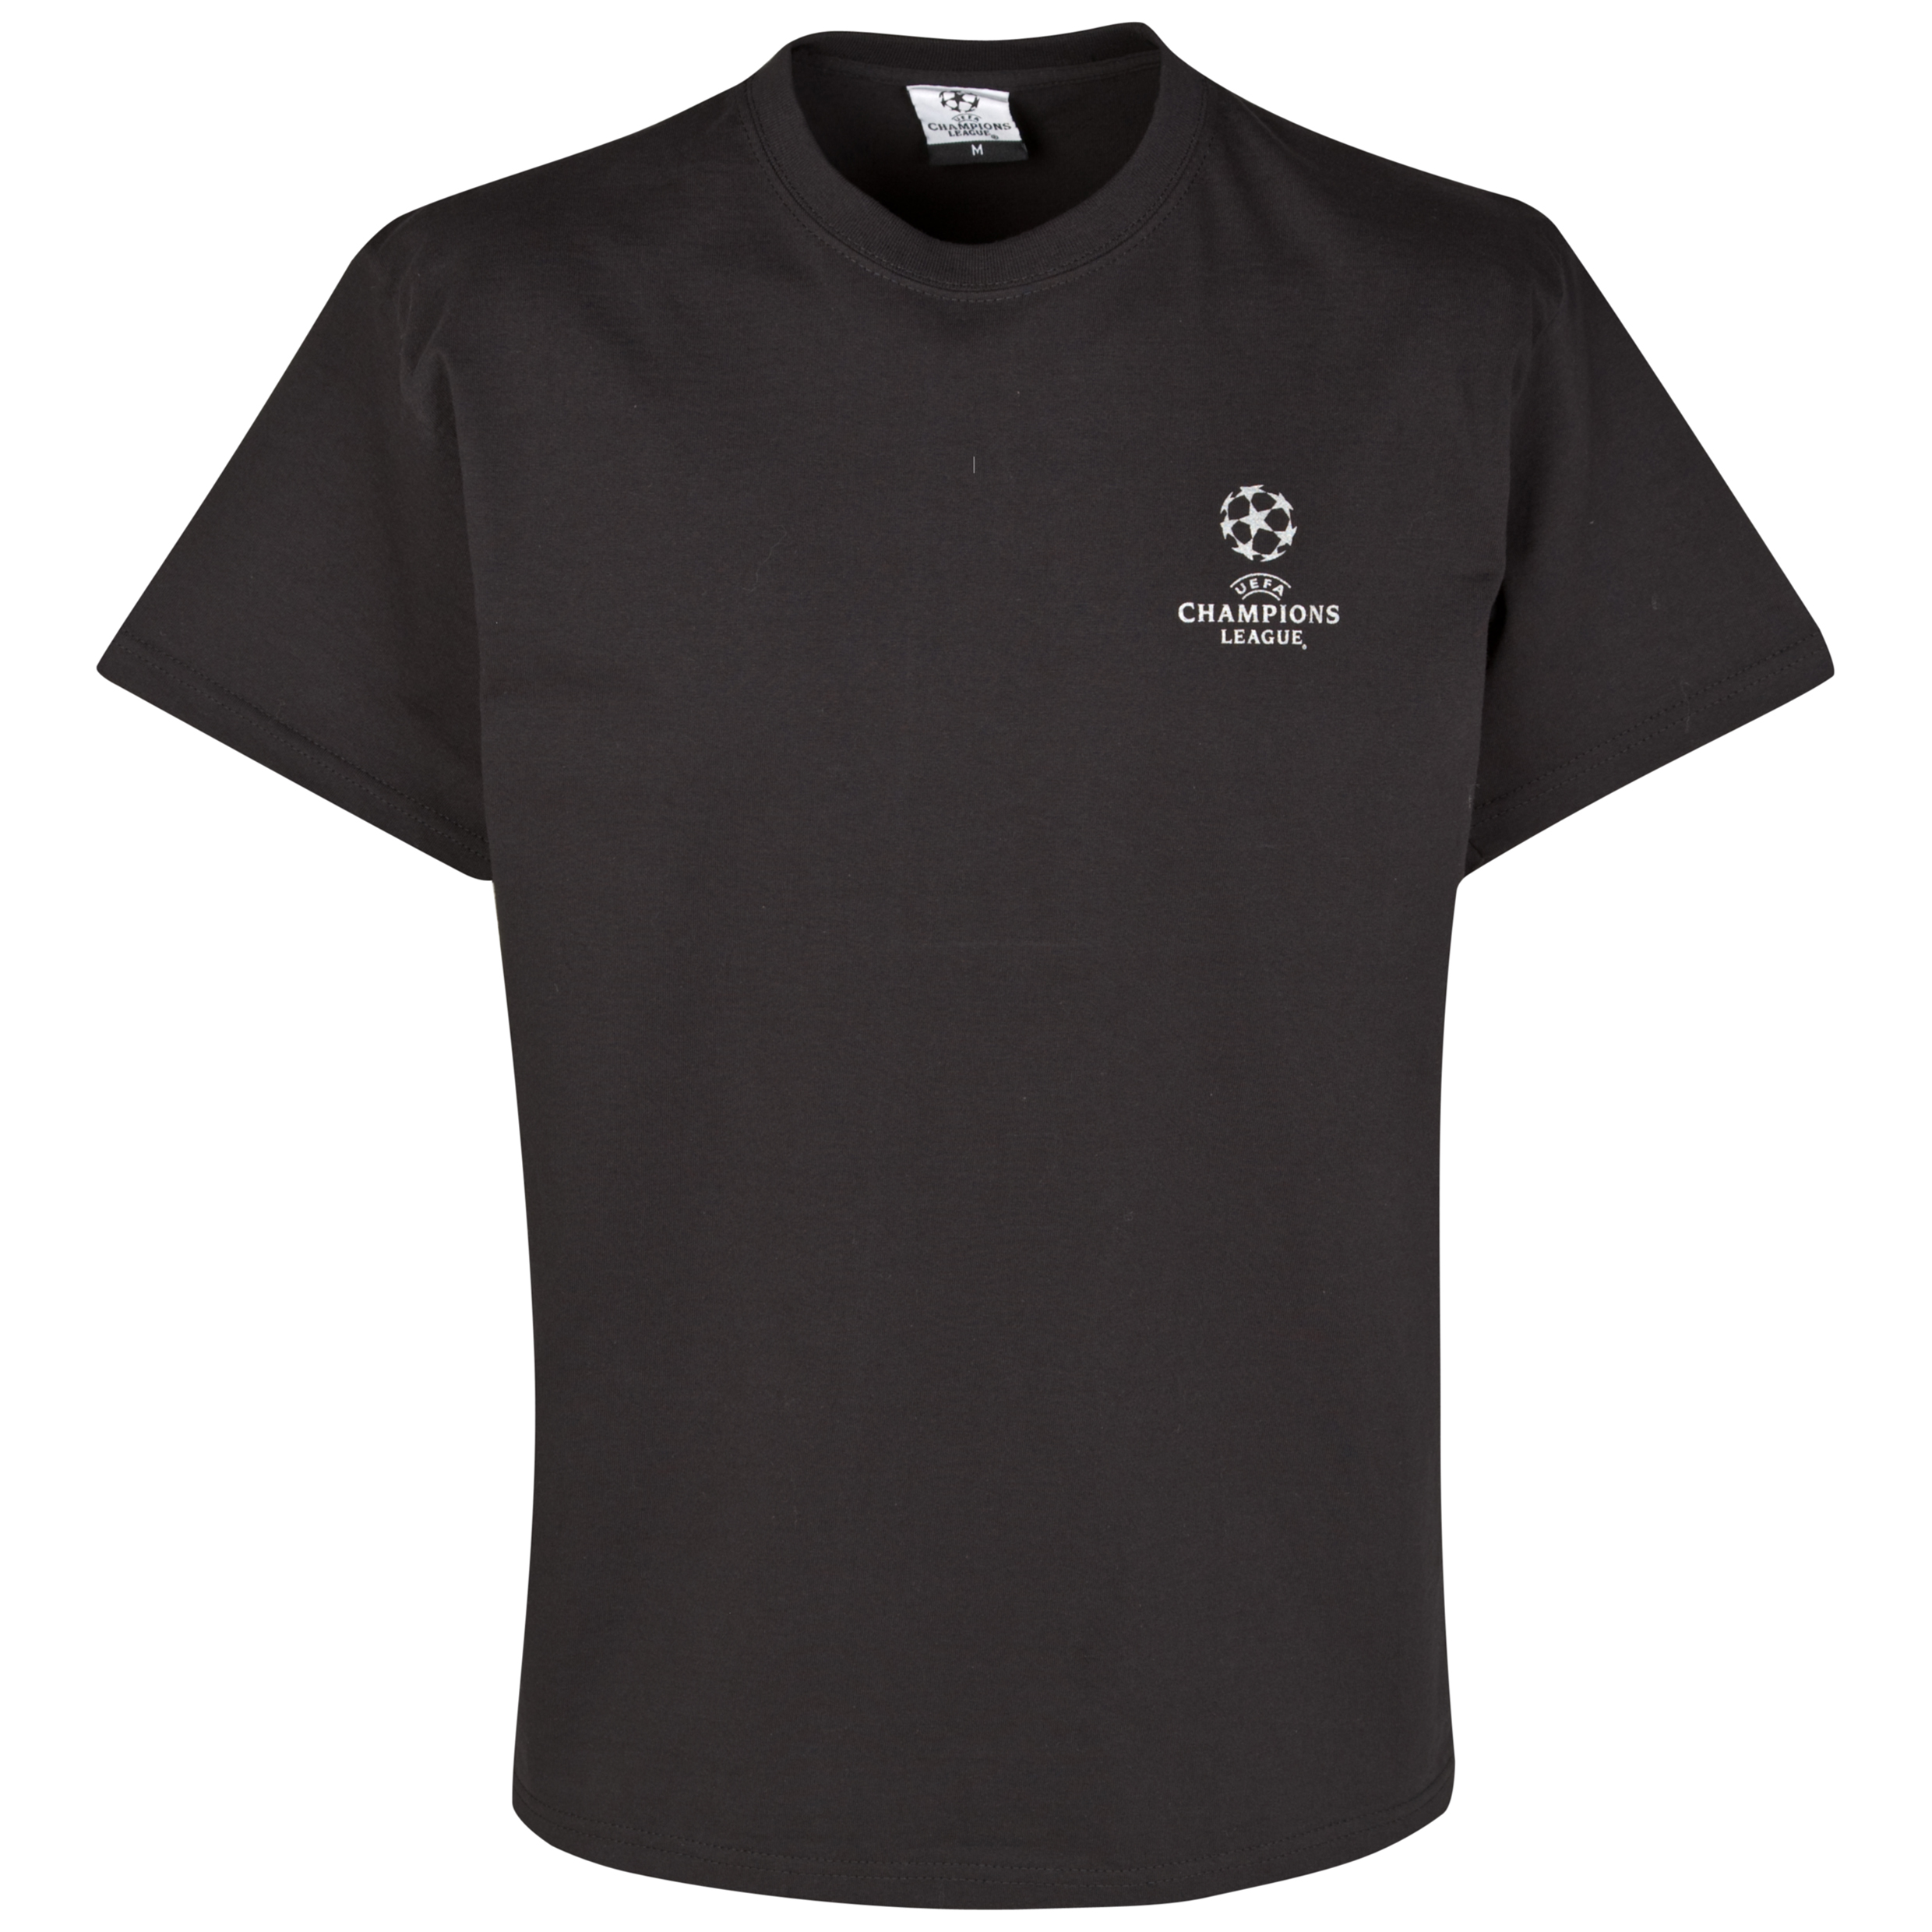 UEFA Champions League T-Shirt - Black